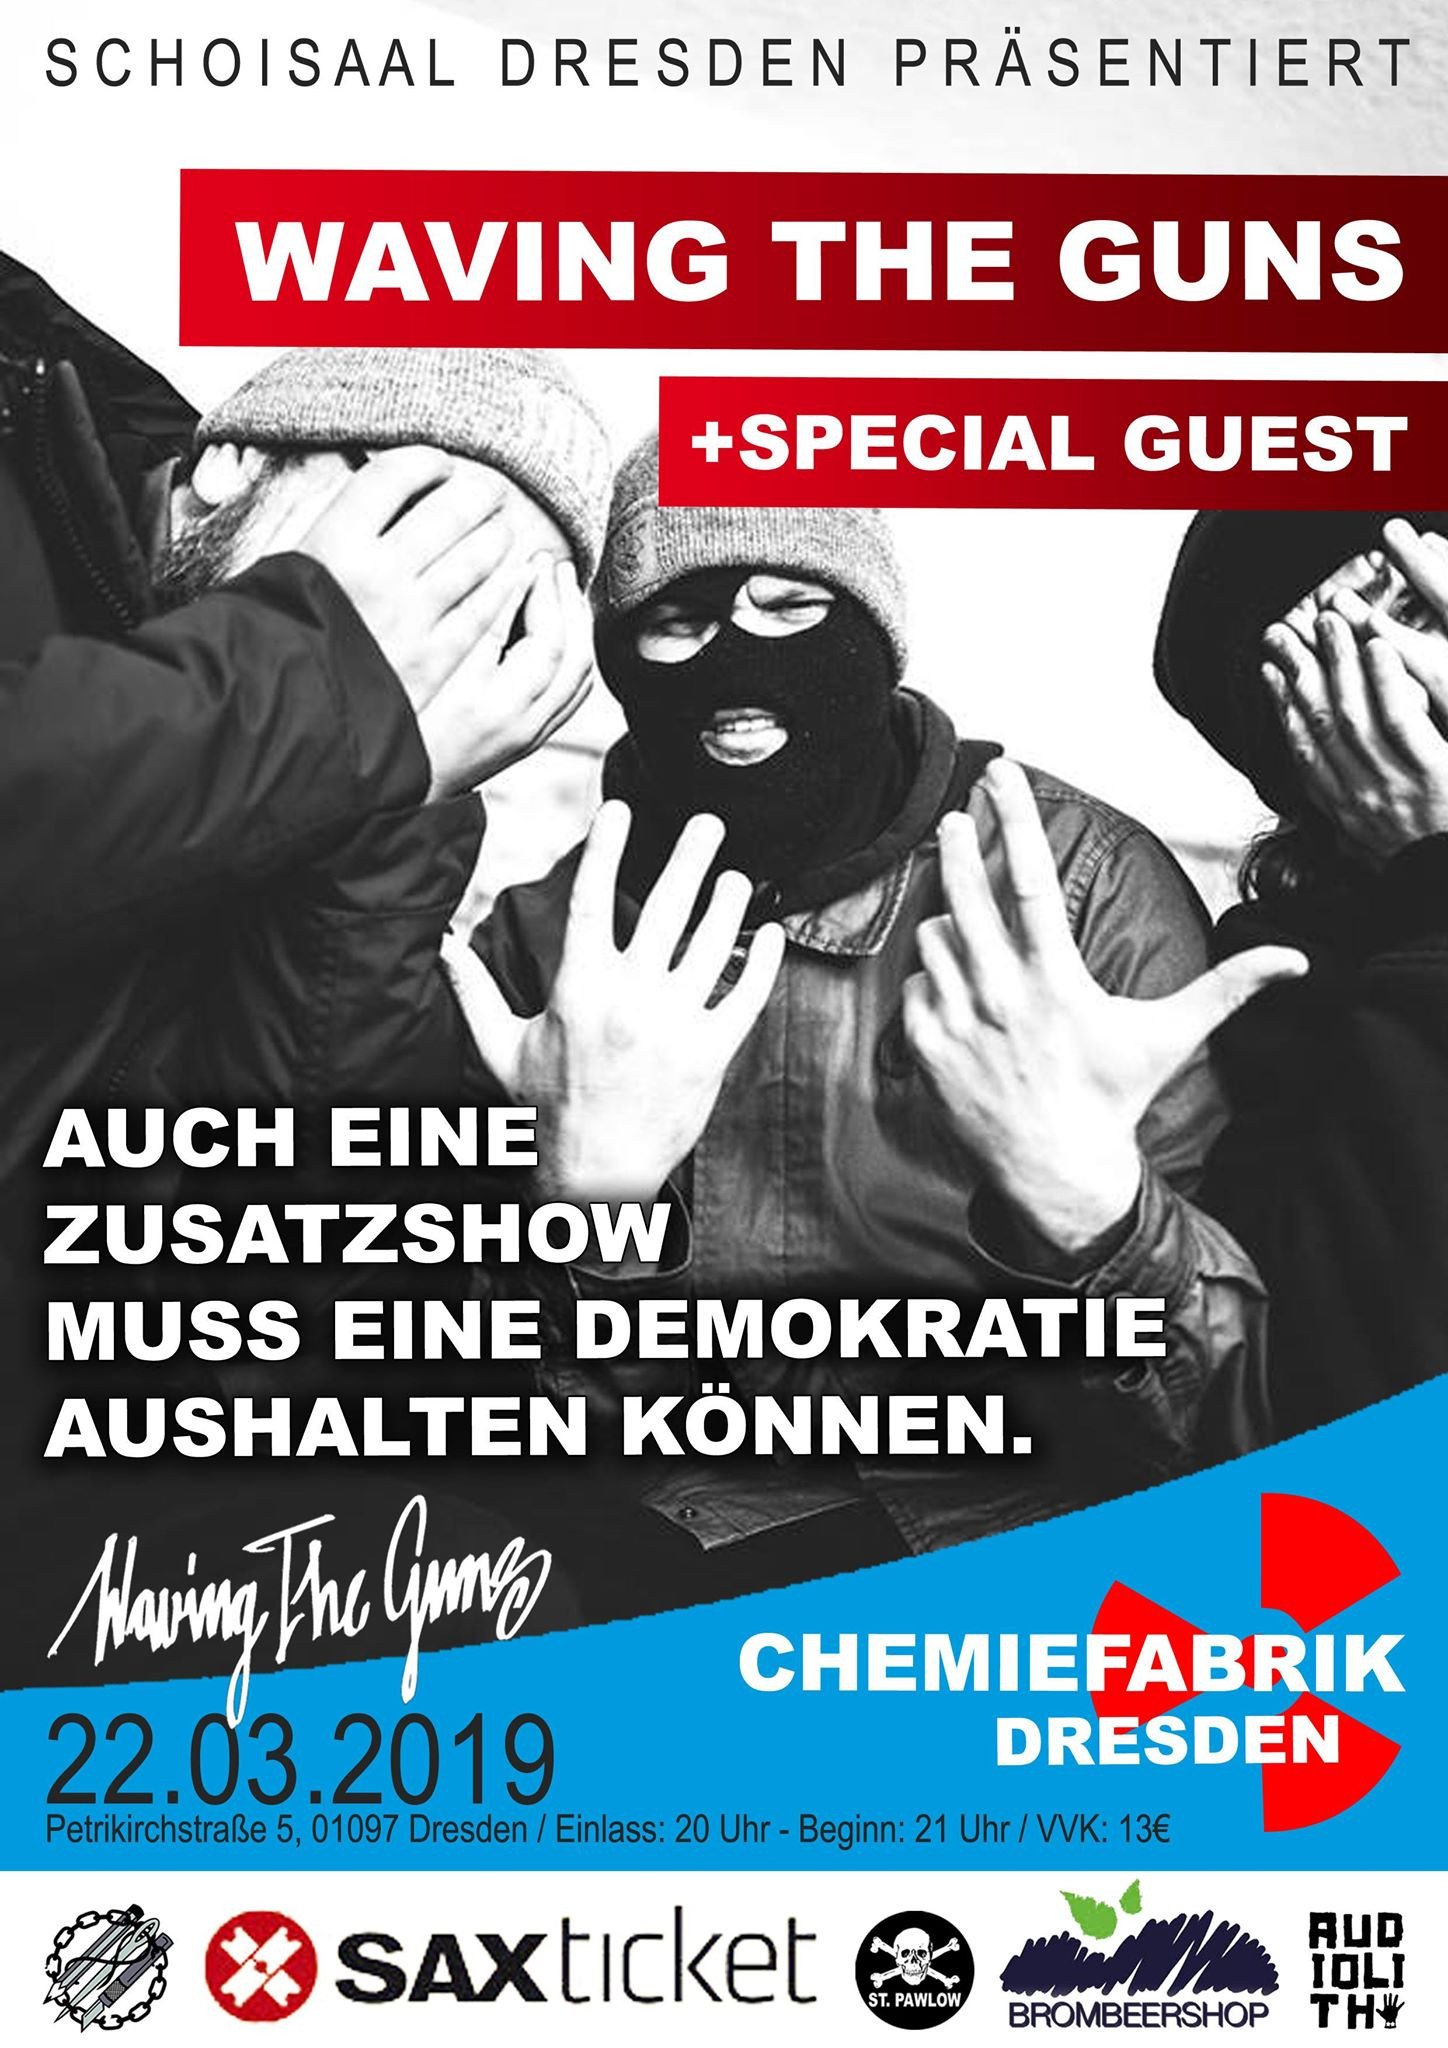 Waving the Guns + special guests